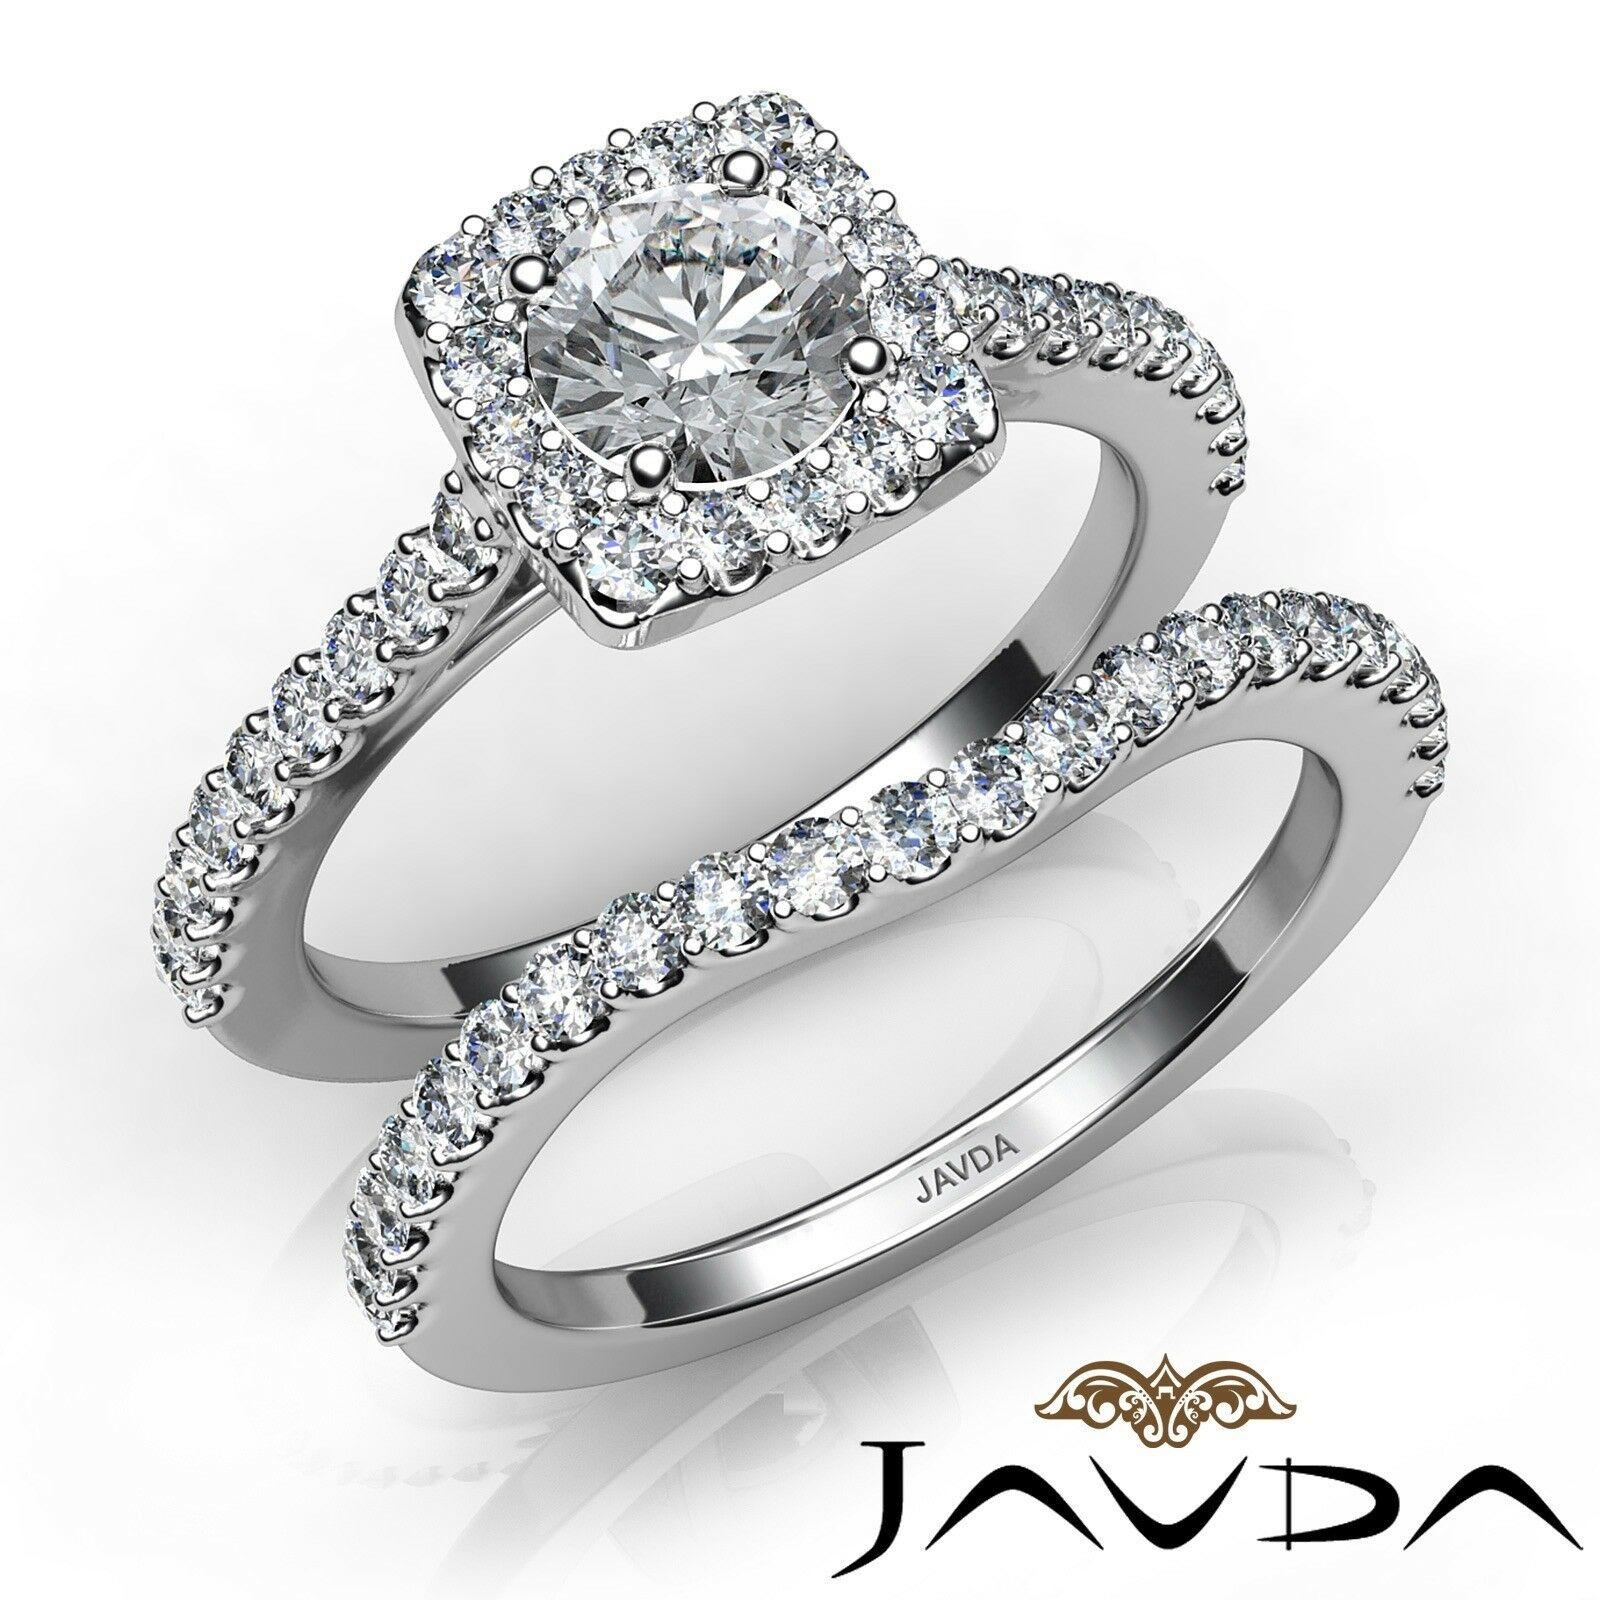 1.6ctw Halo U Prong Bridal Set Round Diamond Engagement Ring GIA E-VVS2 W Gold